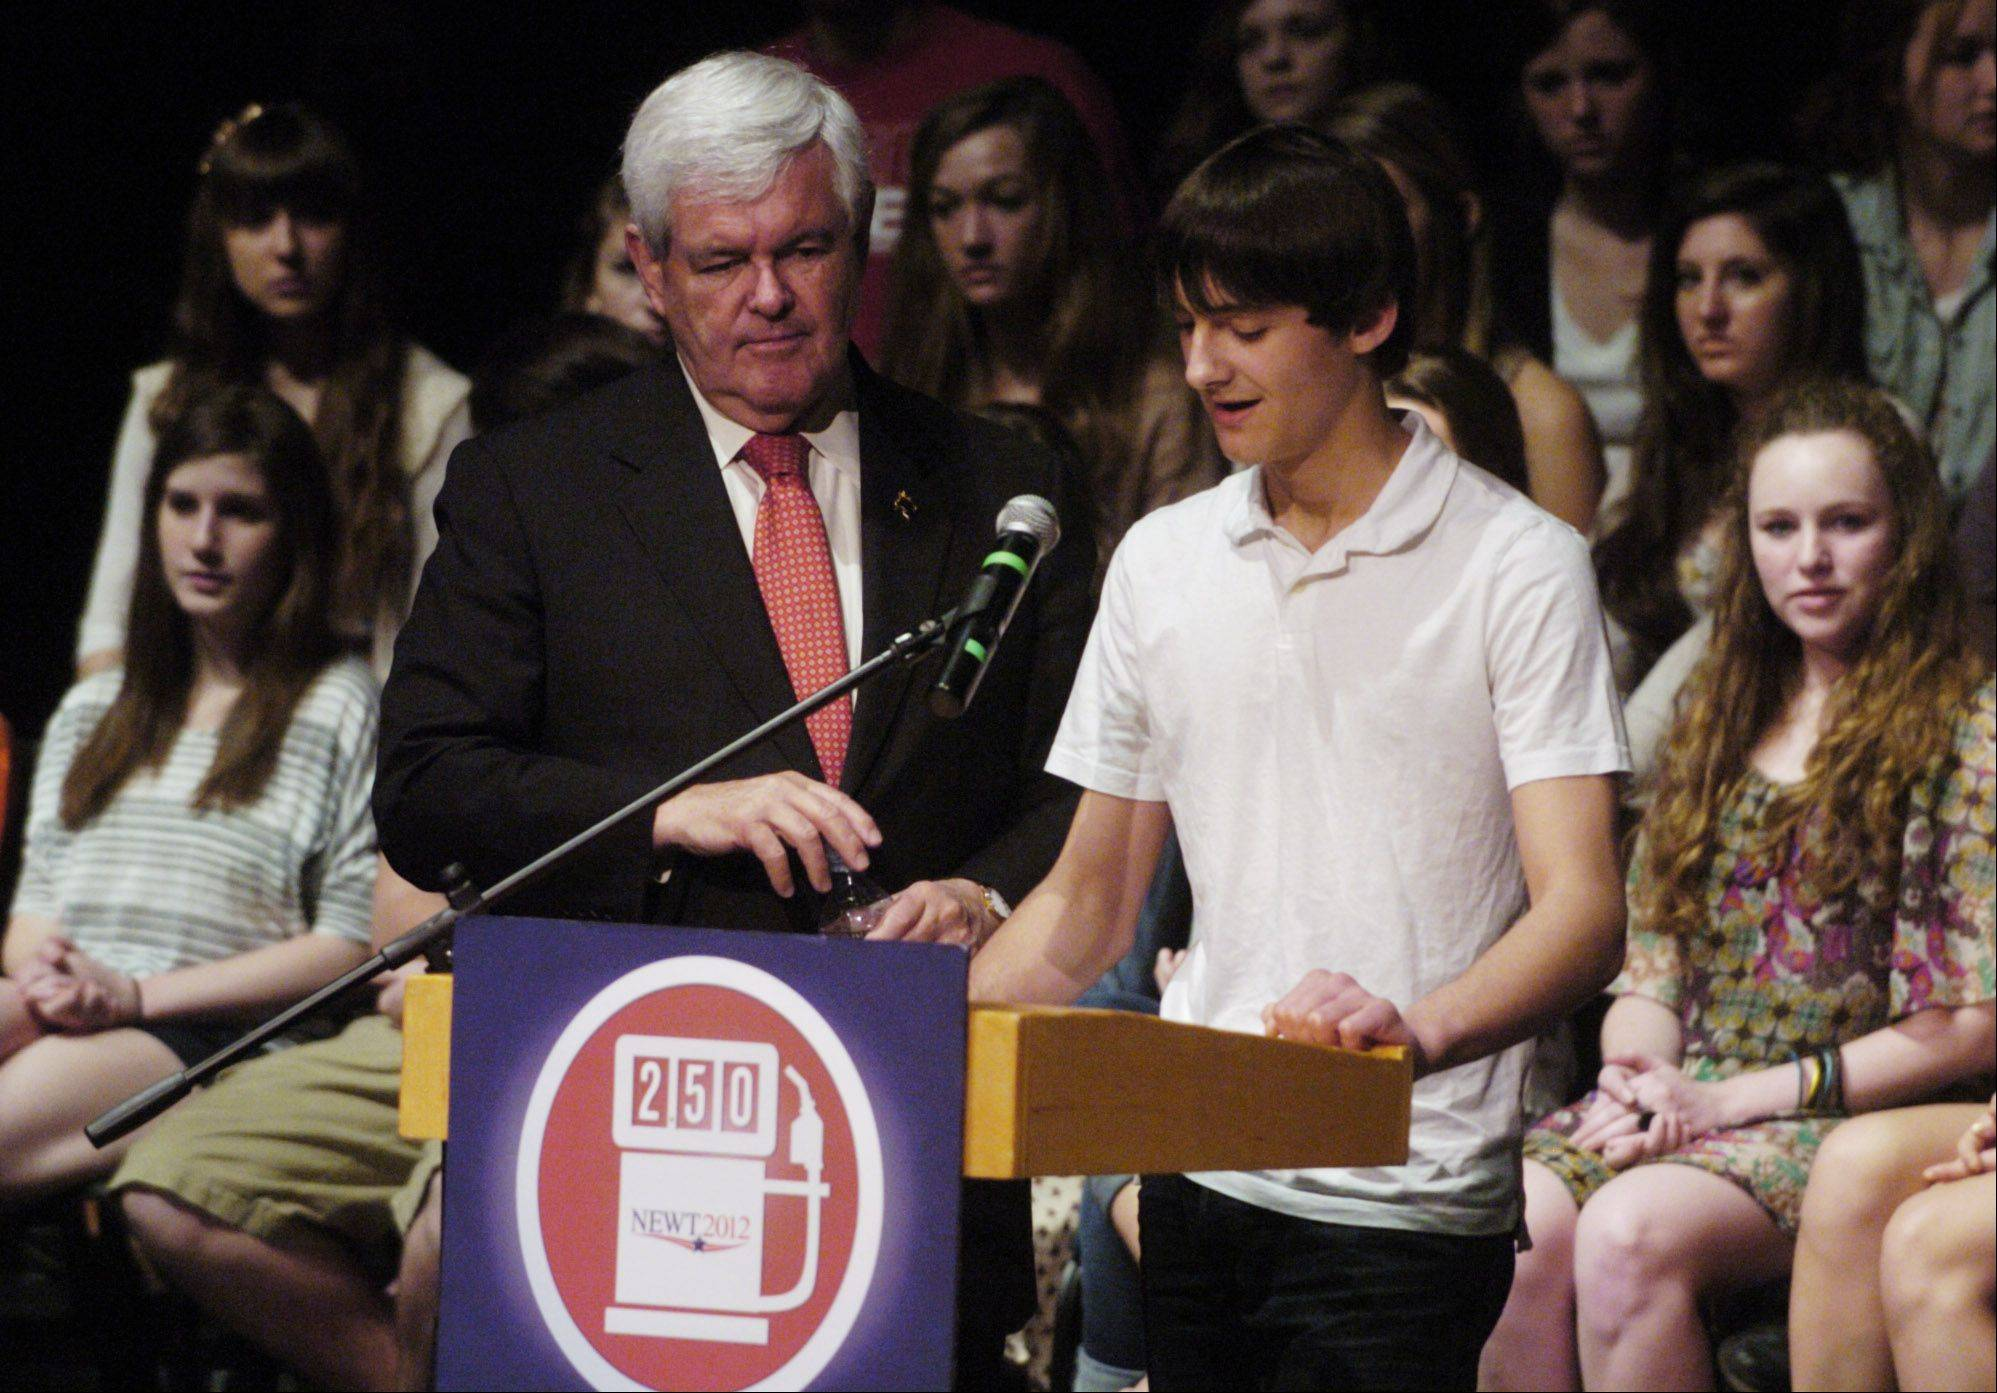 Barrington High School sophomore Patrick Zinck, 15, of Deer Park, asks presidential candidate Newt Gingrich a question during the Georgia Republican's visit to Barrington High School on Thursday.